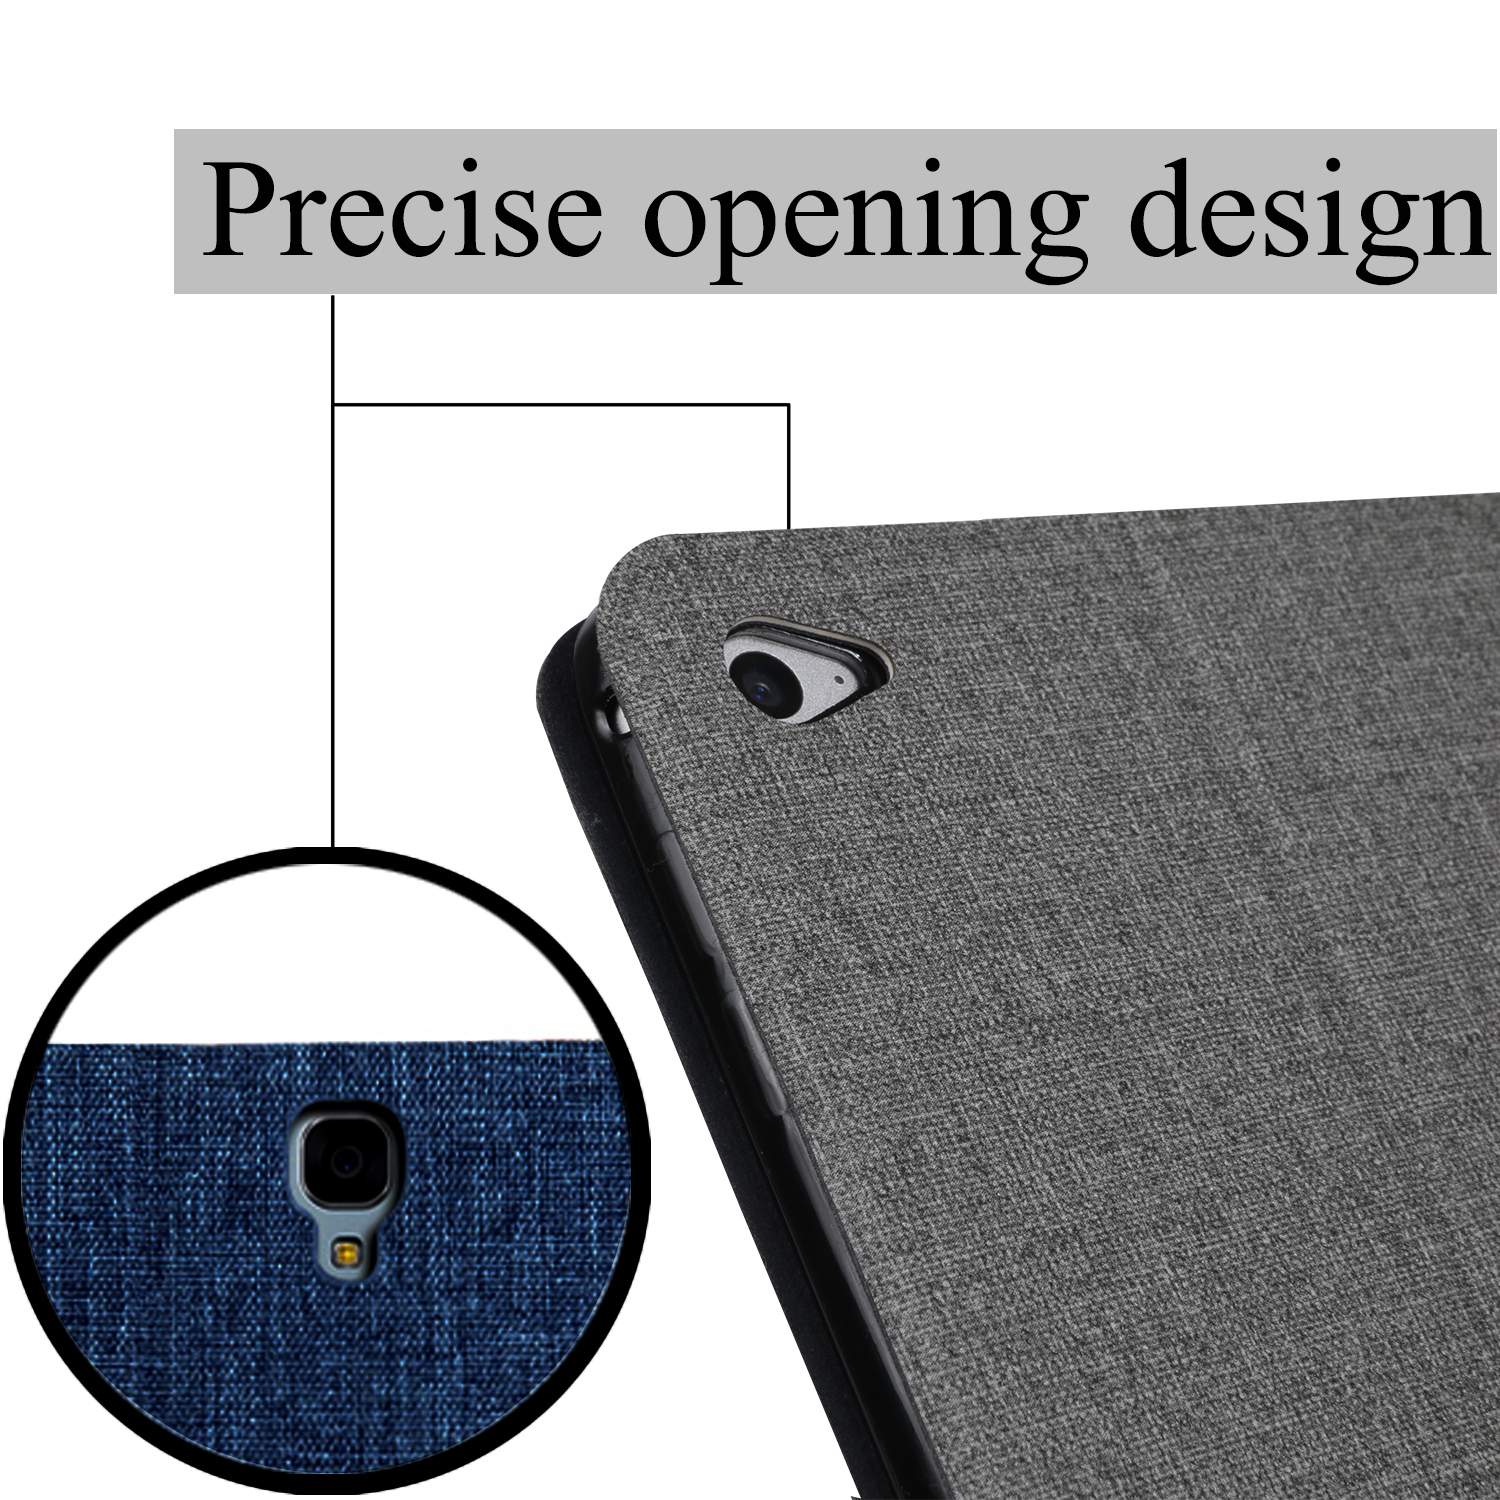 tablet flip case for Samsung Galaxy Tab 4 7 0 quot protective Stand Cover Silicone soft shell bag fundas capa for T230 T231 T235 in Tablets amp e Books Case from Computer amp Office